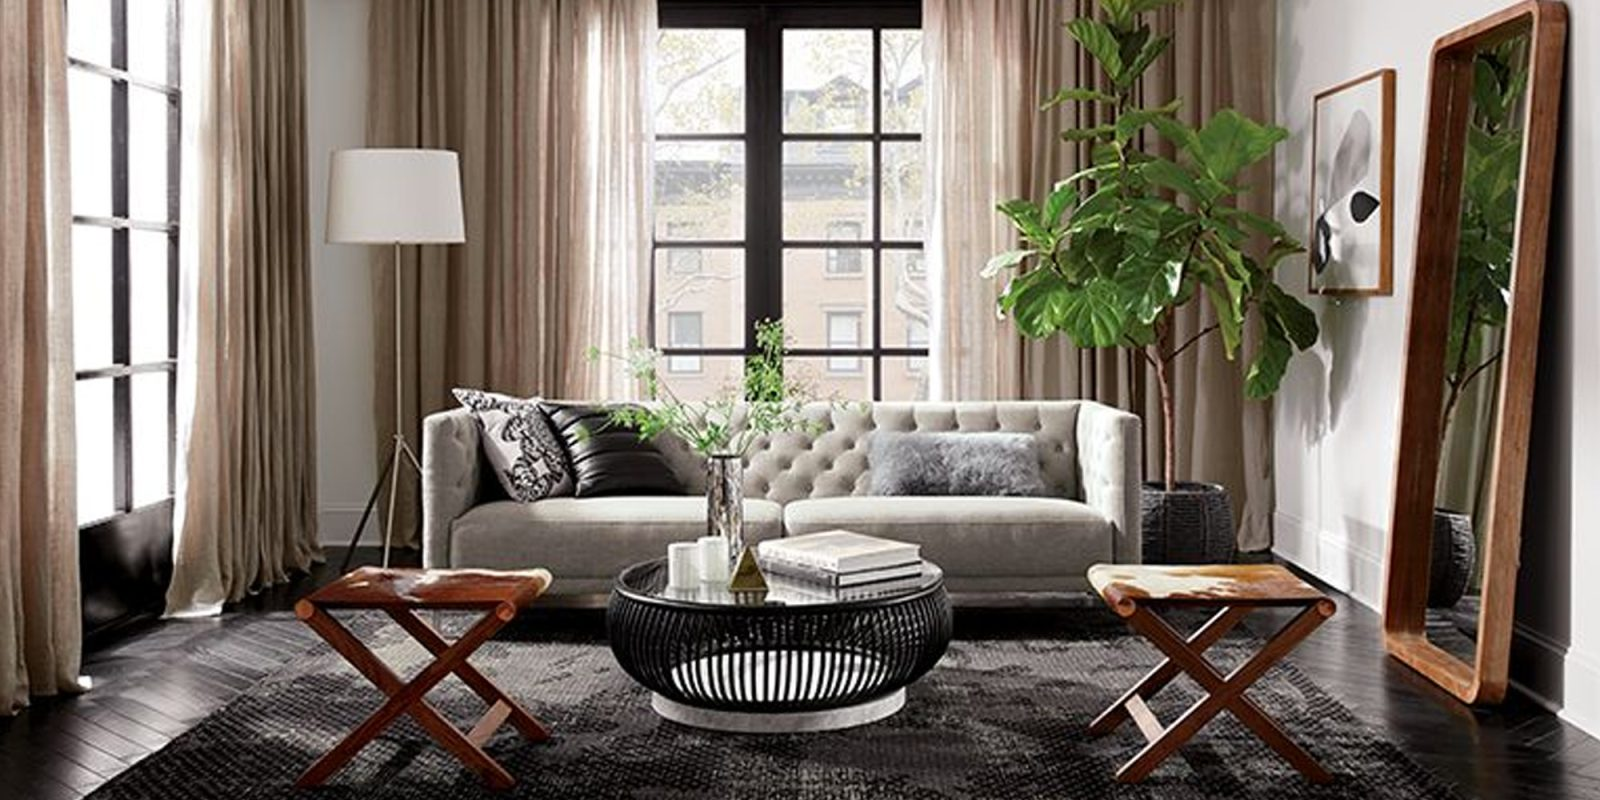 Cb2 Summer Clearance Sale Up To 50 Off Furniture Home Decor And